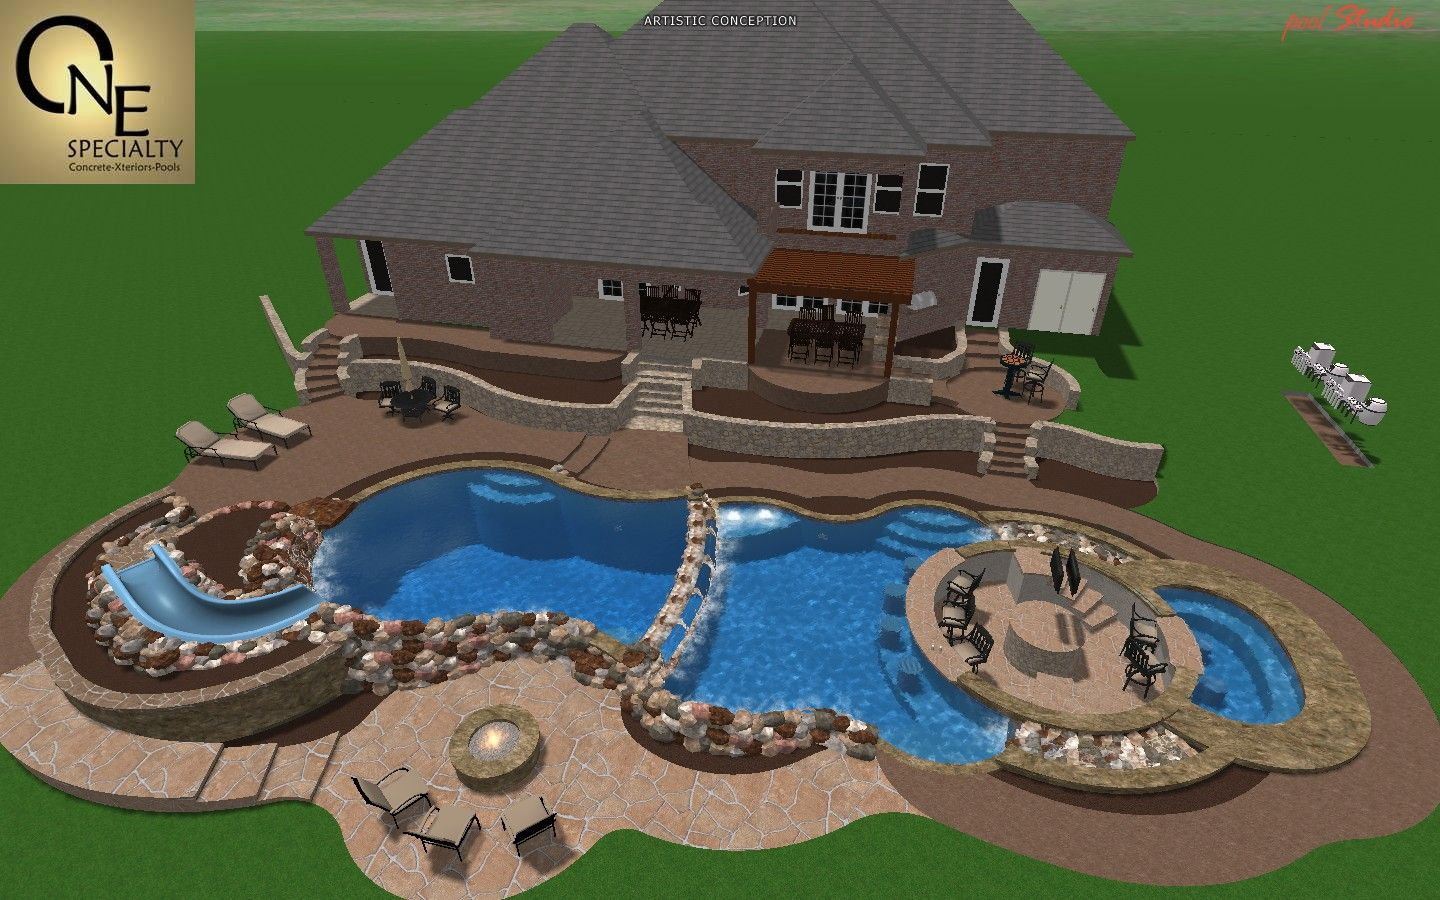 Backyard his swim up bar backyard pool designs pinterest for Pool design with swim up bar